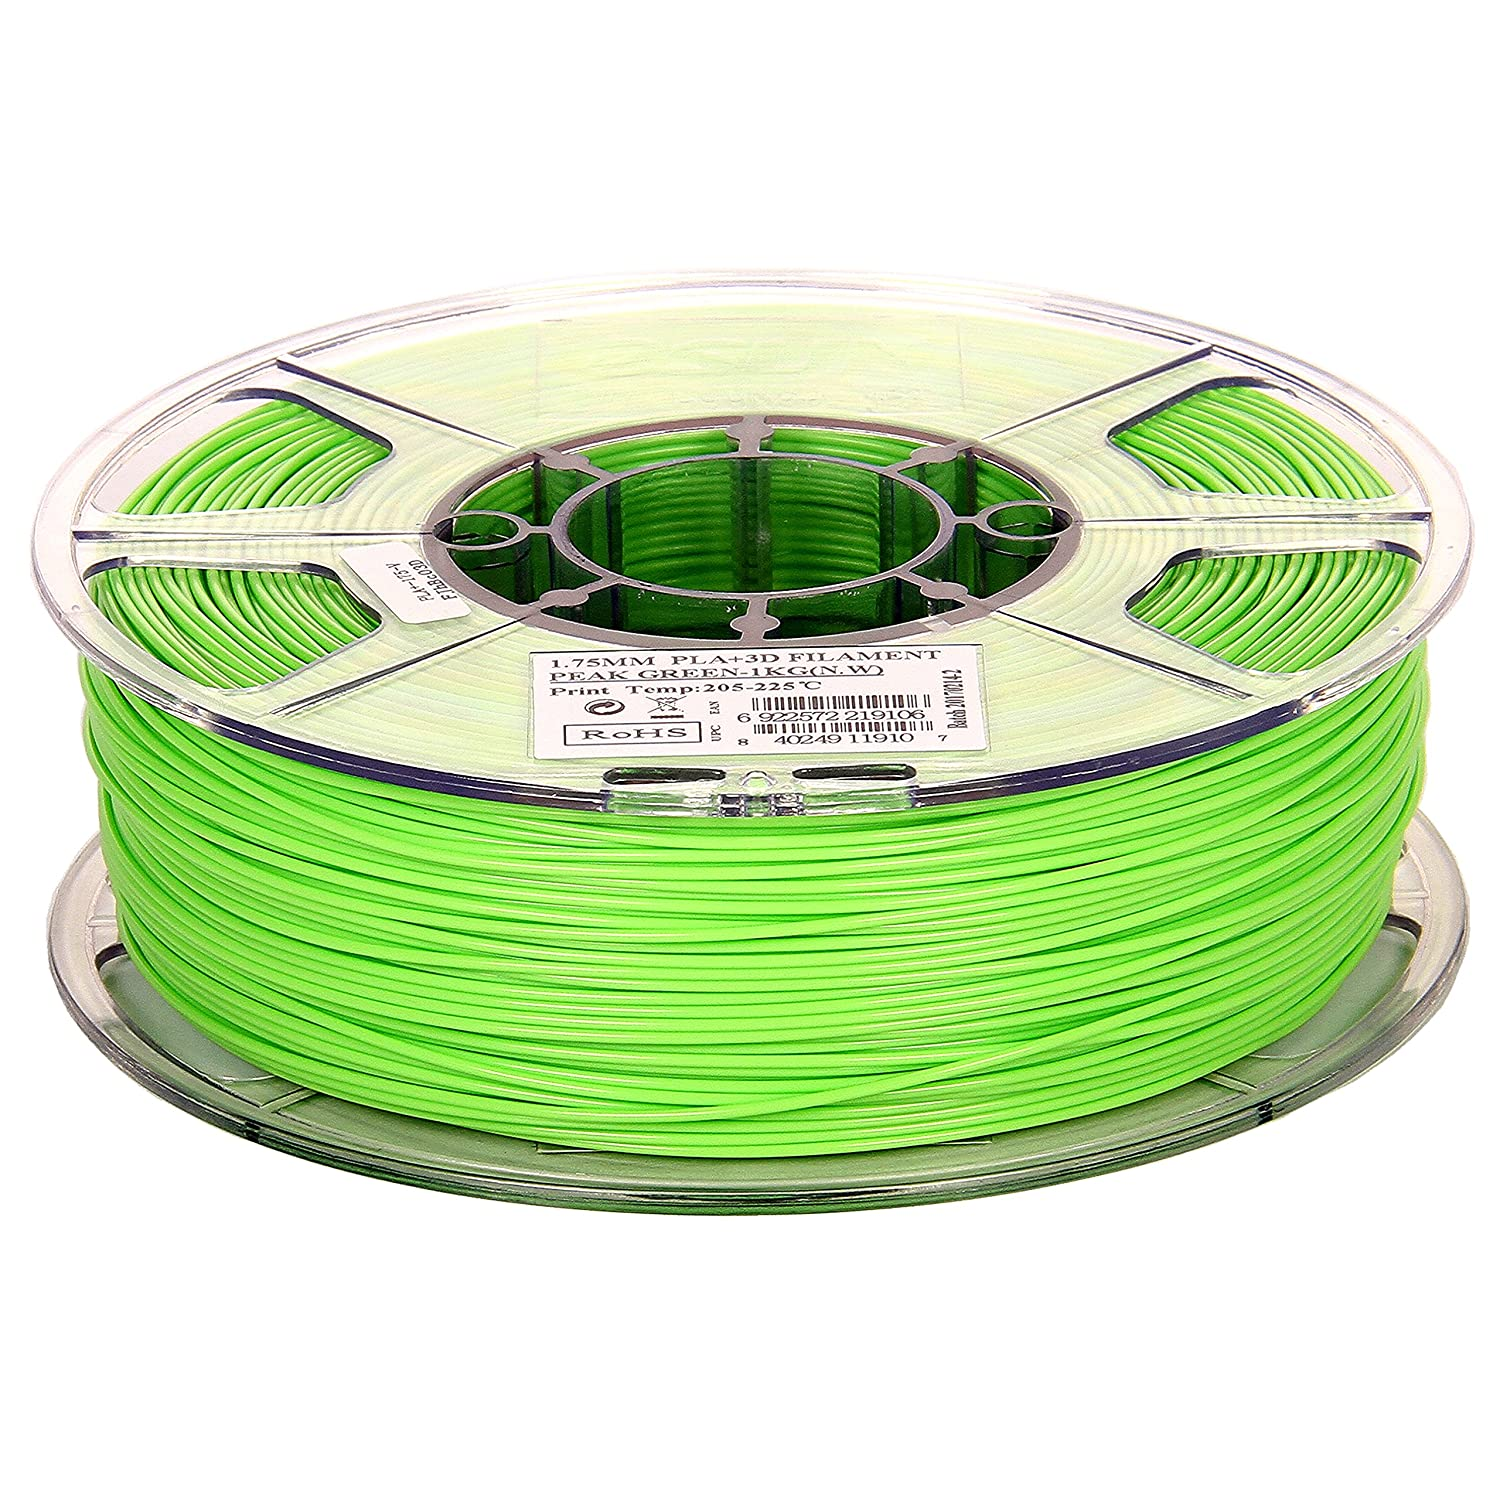 3d Printer Filament Go 3d Abs Peak Green A Complete Range Of Specifications